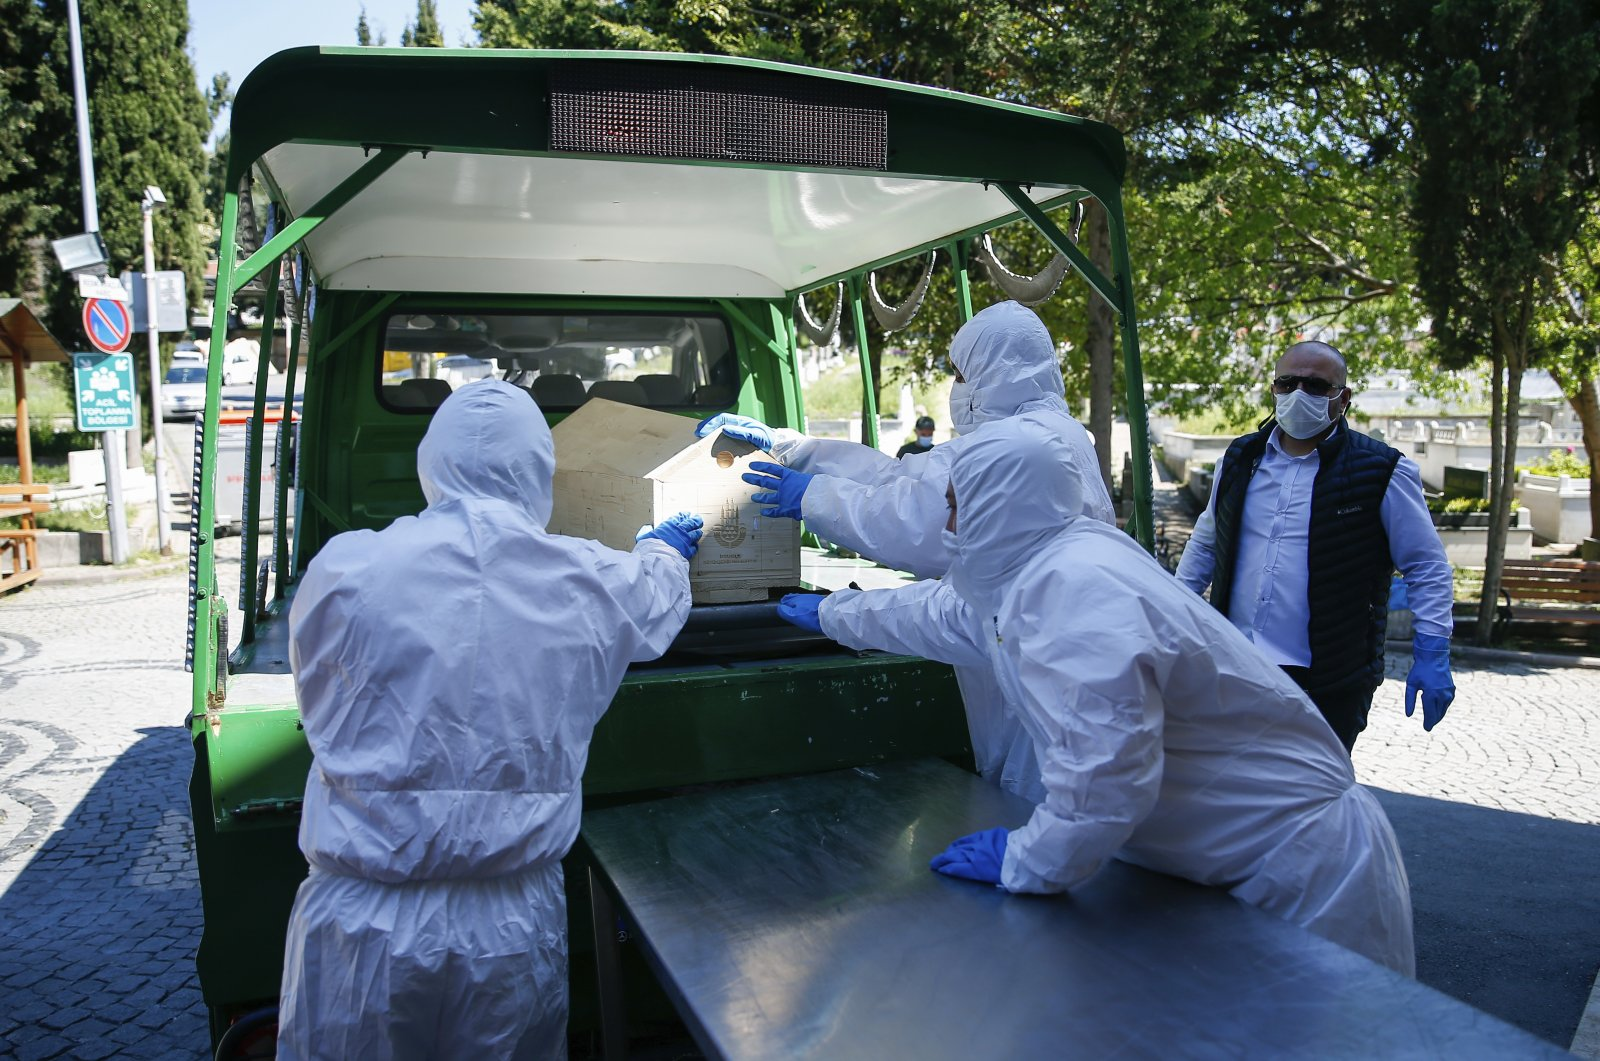 Morgue technicians wearing protective suits load the coffin of a woman who died of COVID-19 onto a hearse, Istanbul, Turkey, May 10, 2020. (AP Photo)